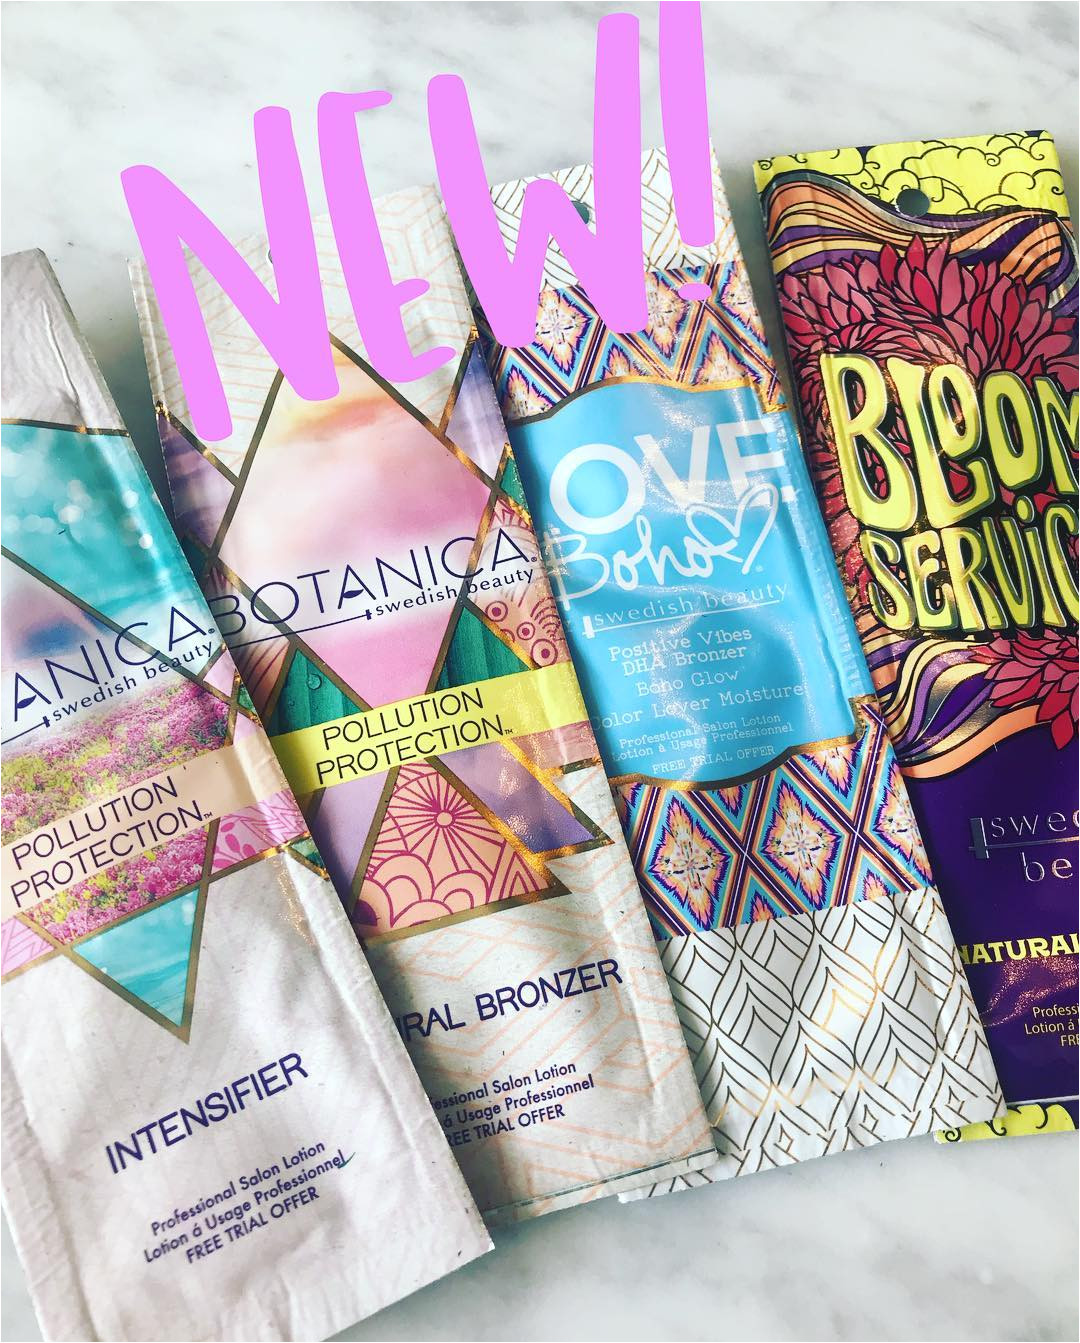 new brand new lotions well of course it s just a sneak pick i mean i didn t get all the new lotion samples it s just 4 of all the new lotions they are